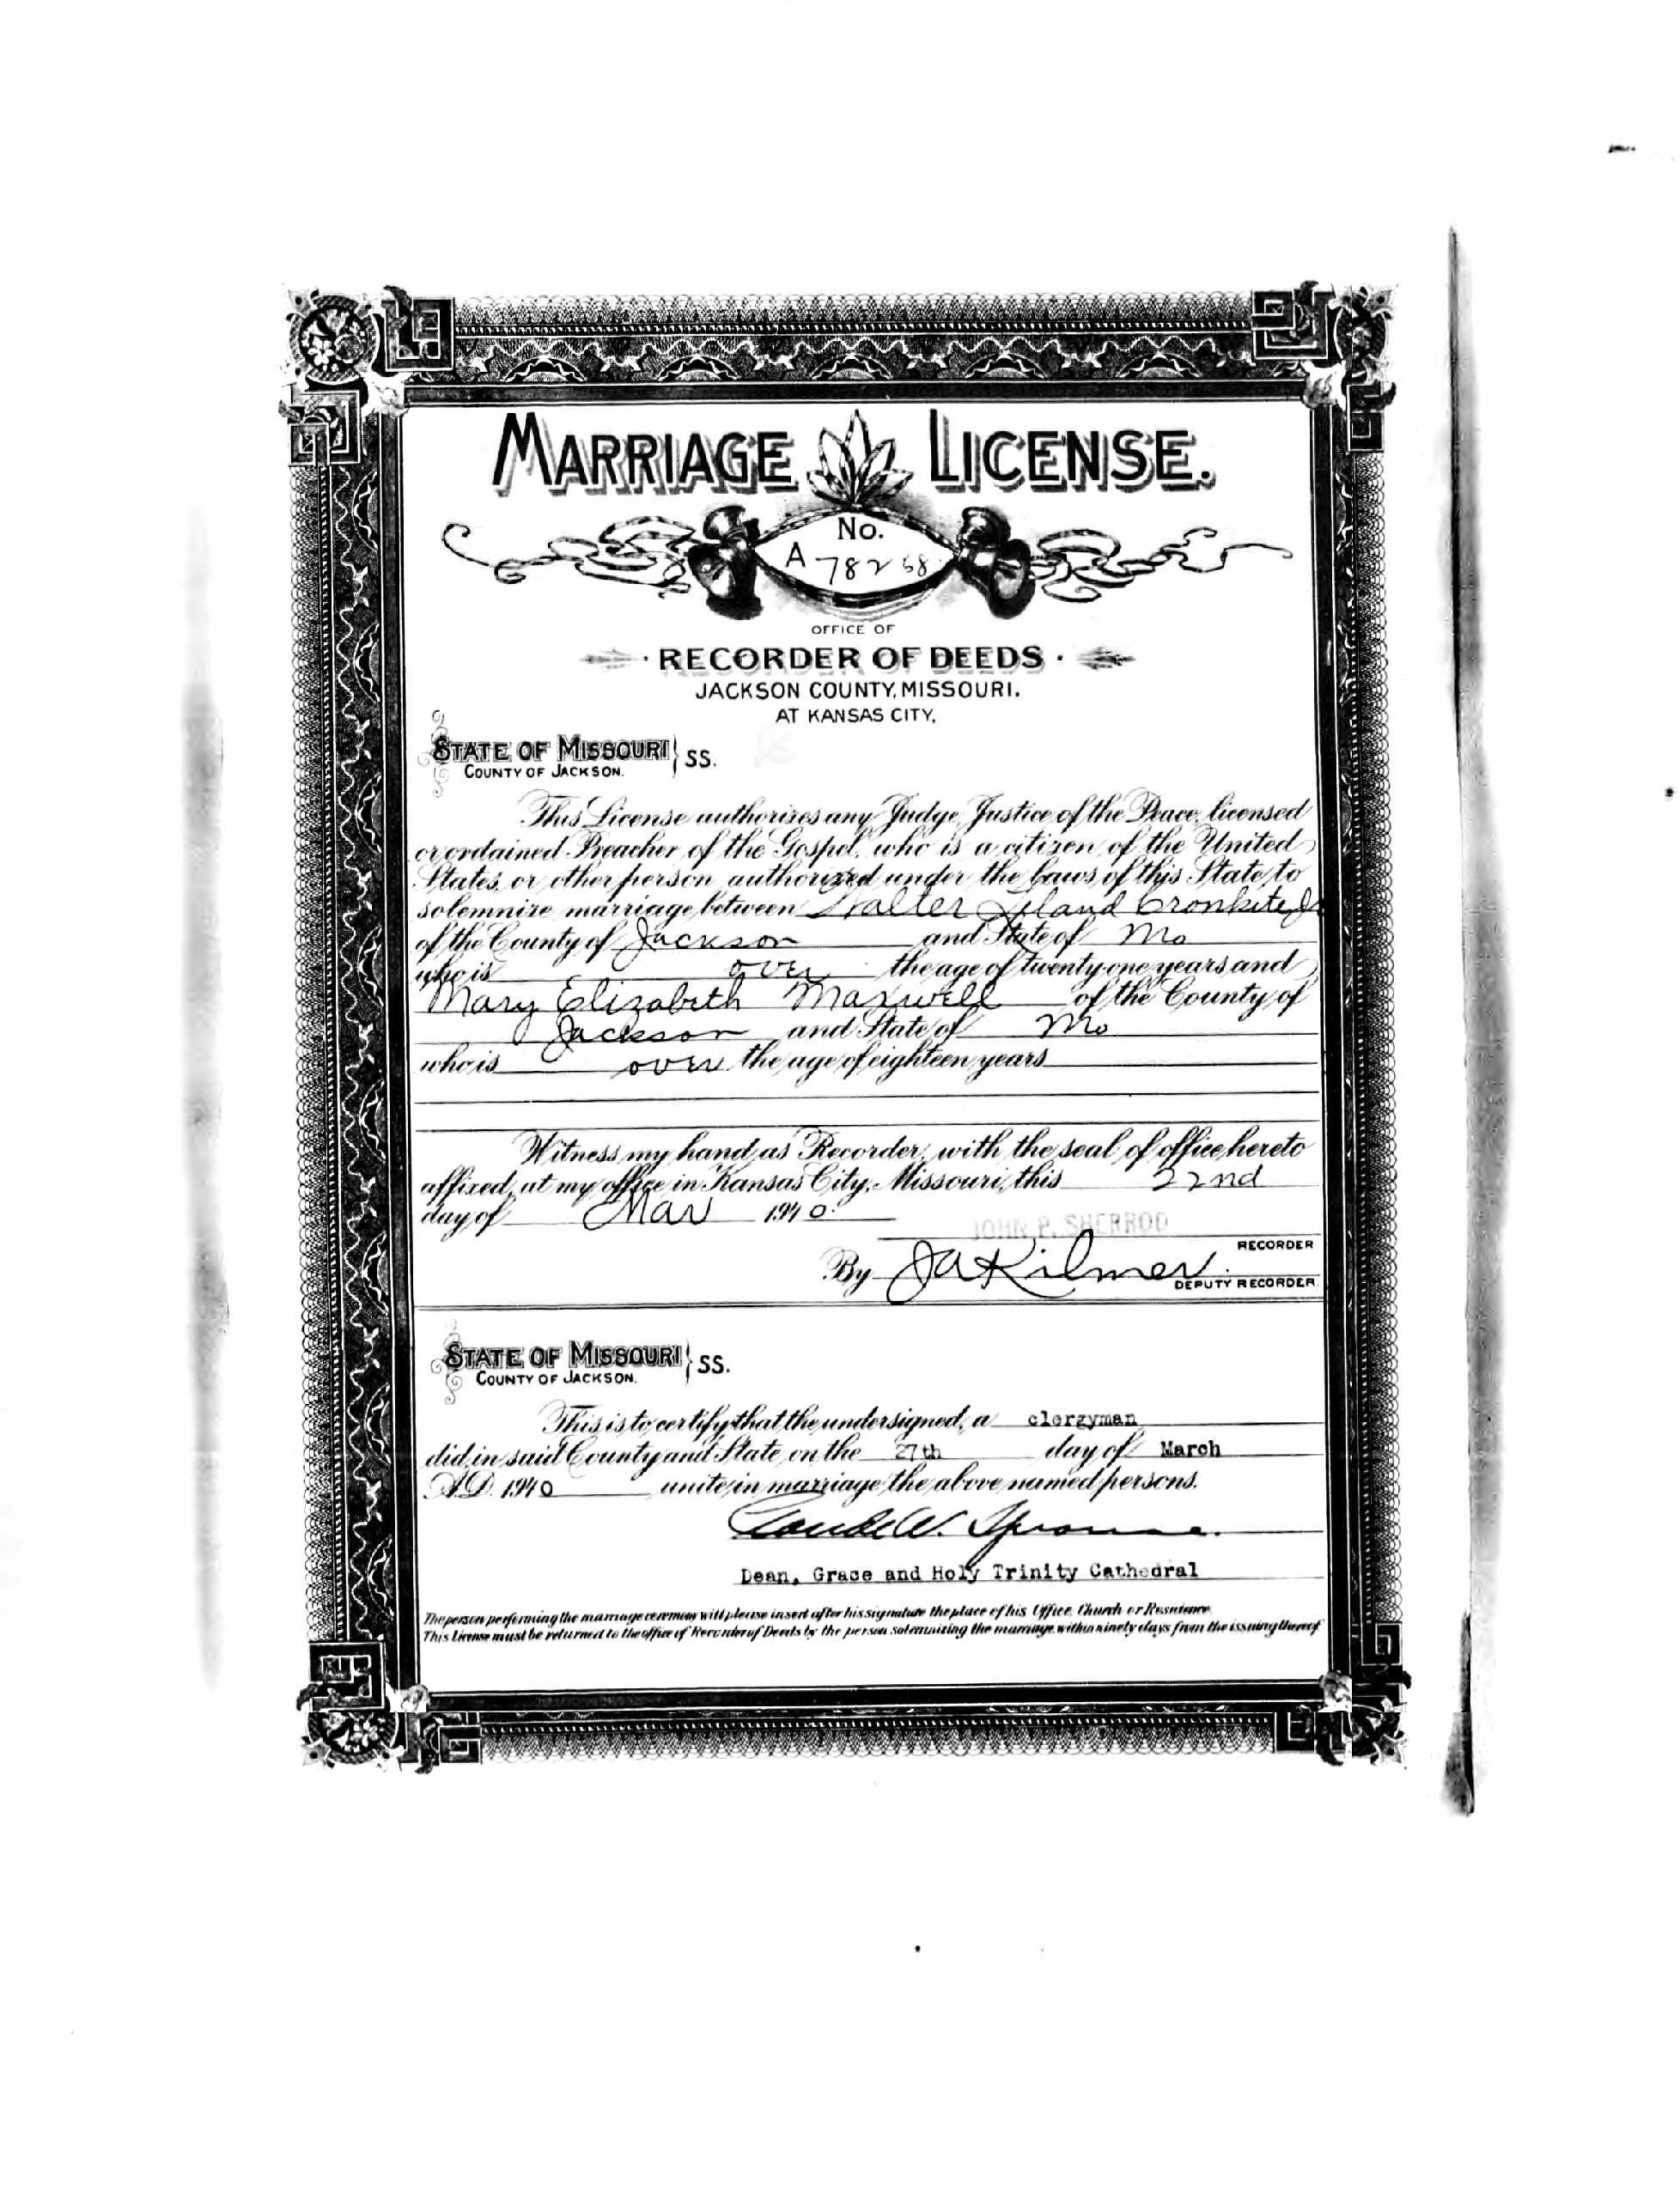 Mary elizabeth betsy maxwell cronkite 1916 2005 find a grave the marriage license and certificate attesting to the marriage of mary and walter l cronkite jr on march 27 1940 in jackson county missouri xflitez Image collections